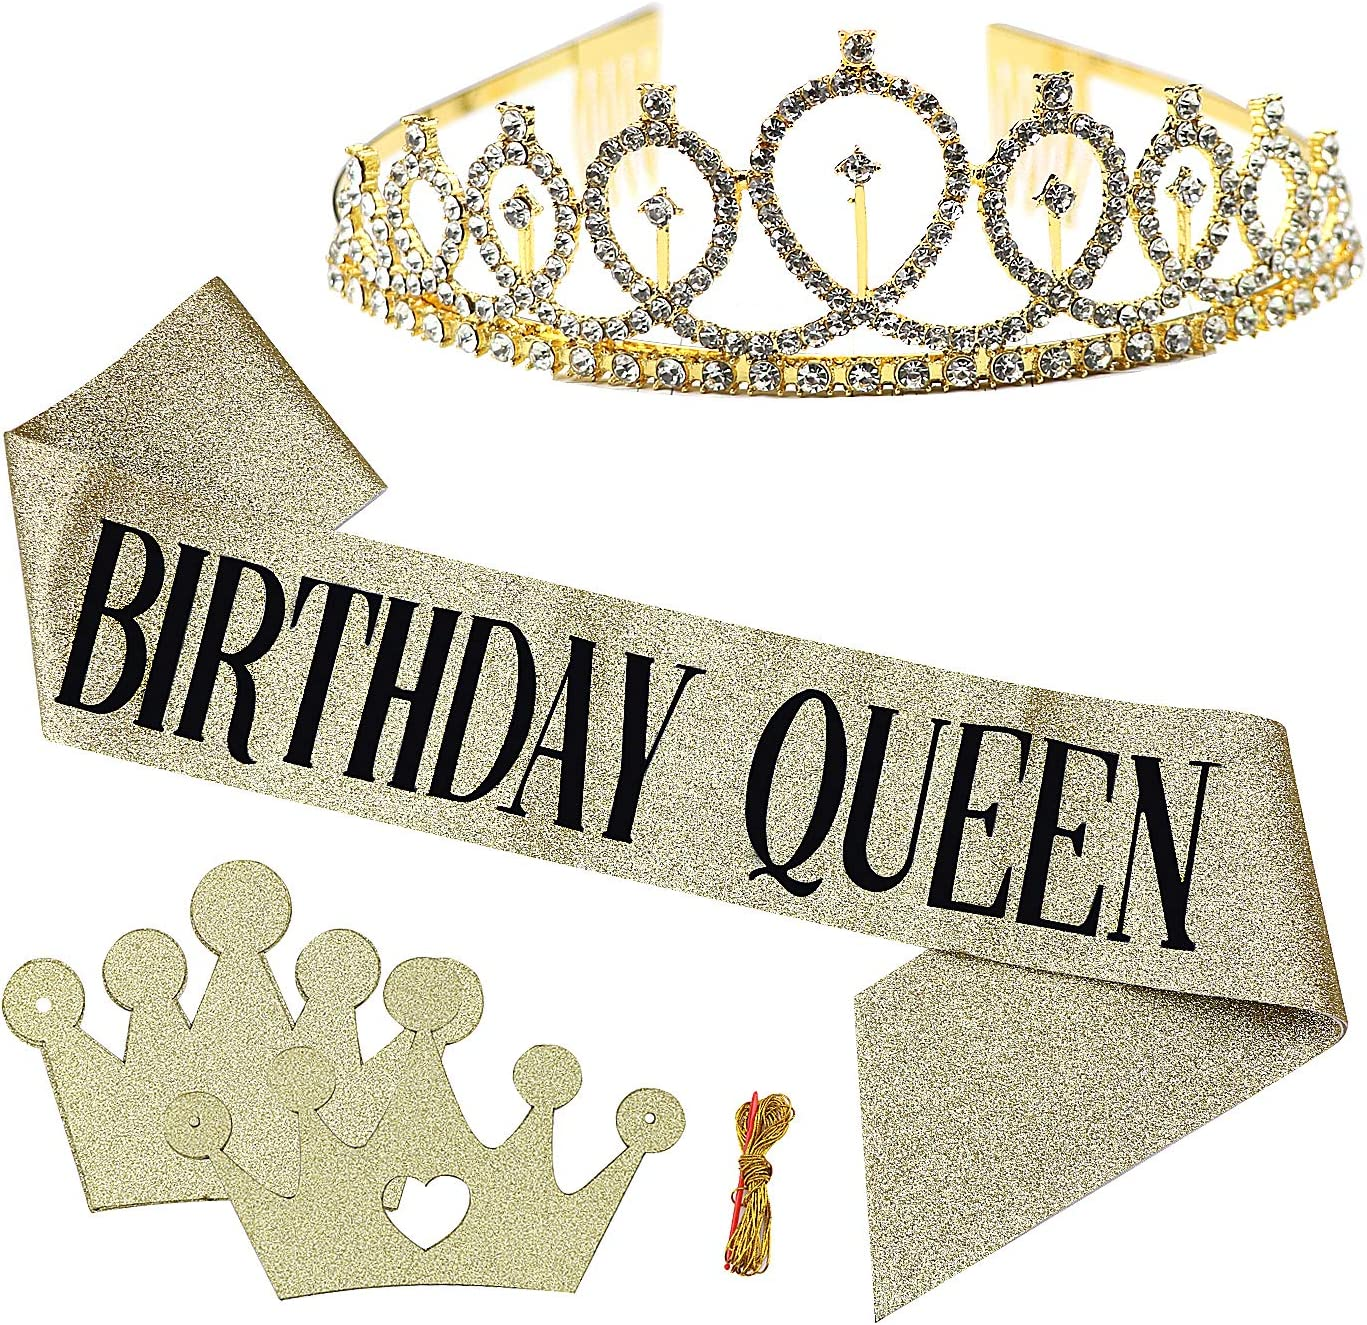 """MoonBrush """"Birthday Queen"""" Theme Party Kits, Gold Glitter Birthday Sash with Black Lettering Rhinestone Tiara Crown Pull Flag for Women Birthday Party Supplies"""